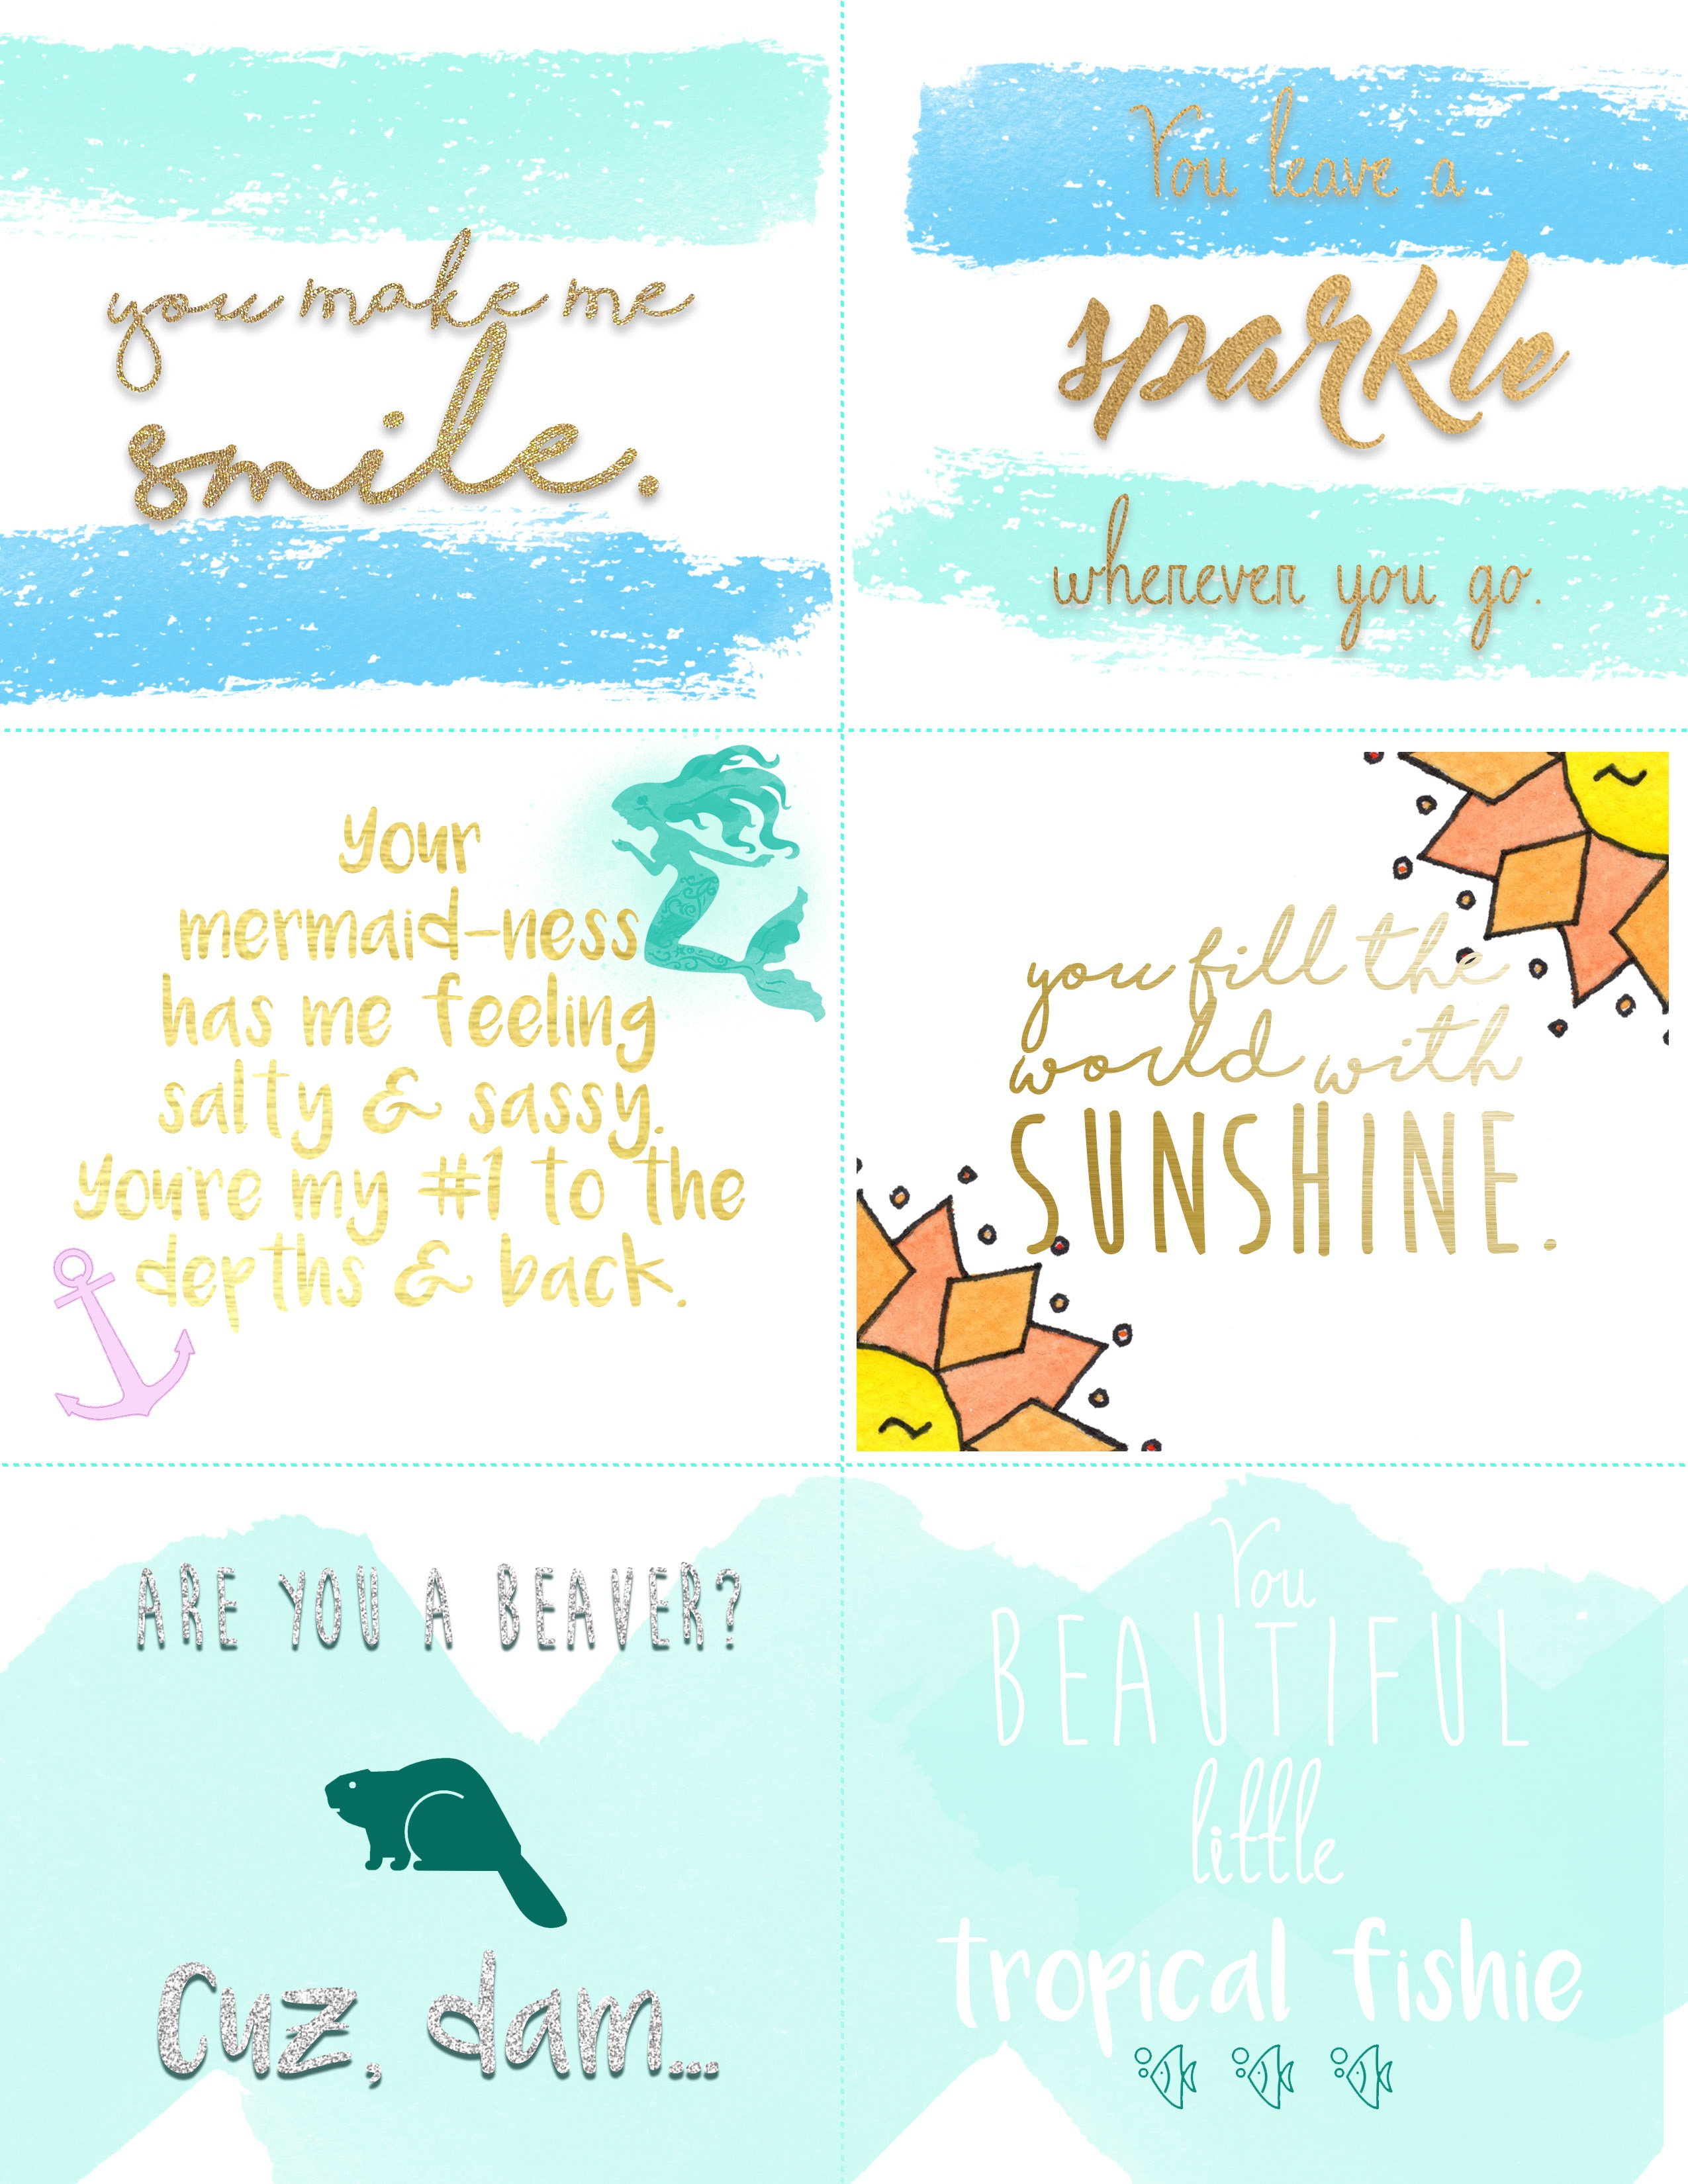 National Compliment Day: Cool Gear Compliment Print Out - Free Printable Compliment Cards